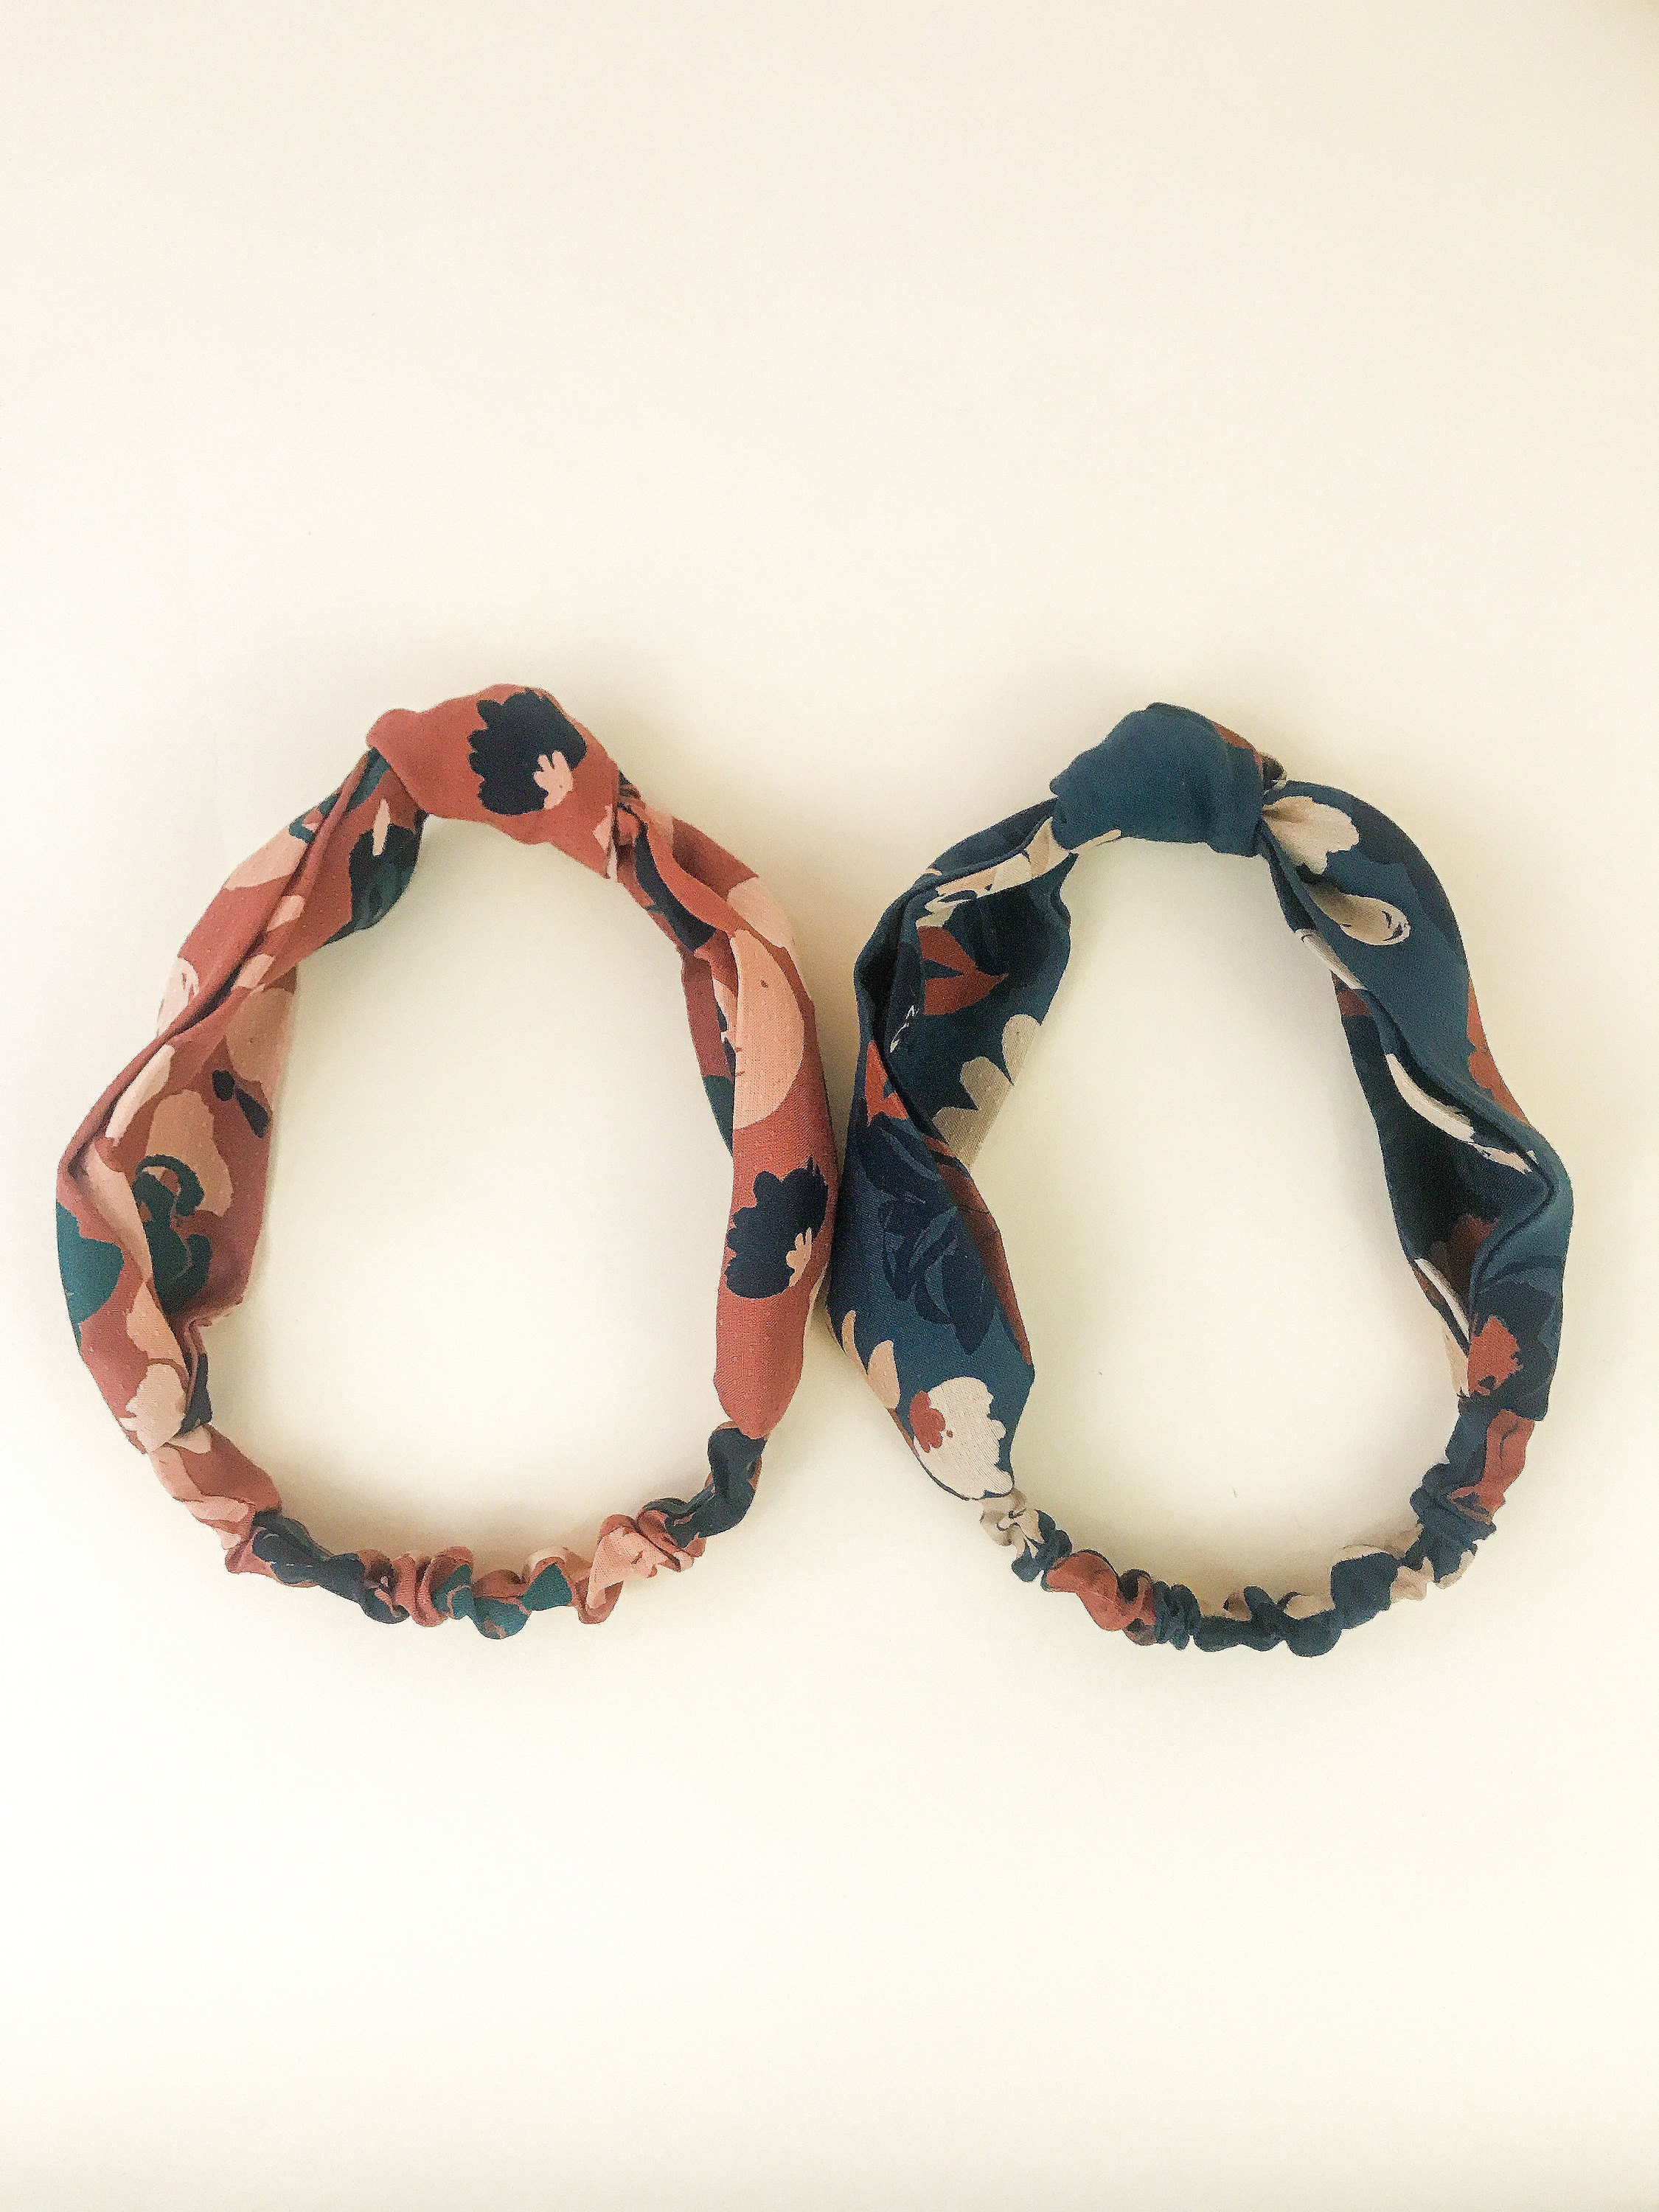 Brown and gray floral knotted headbands.